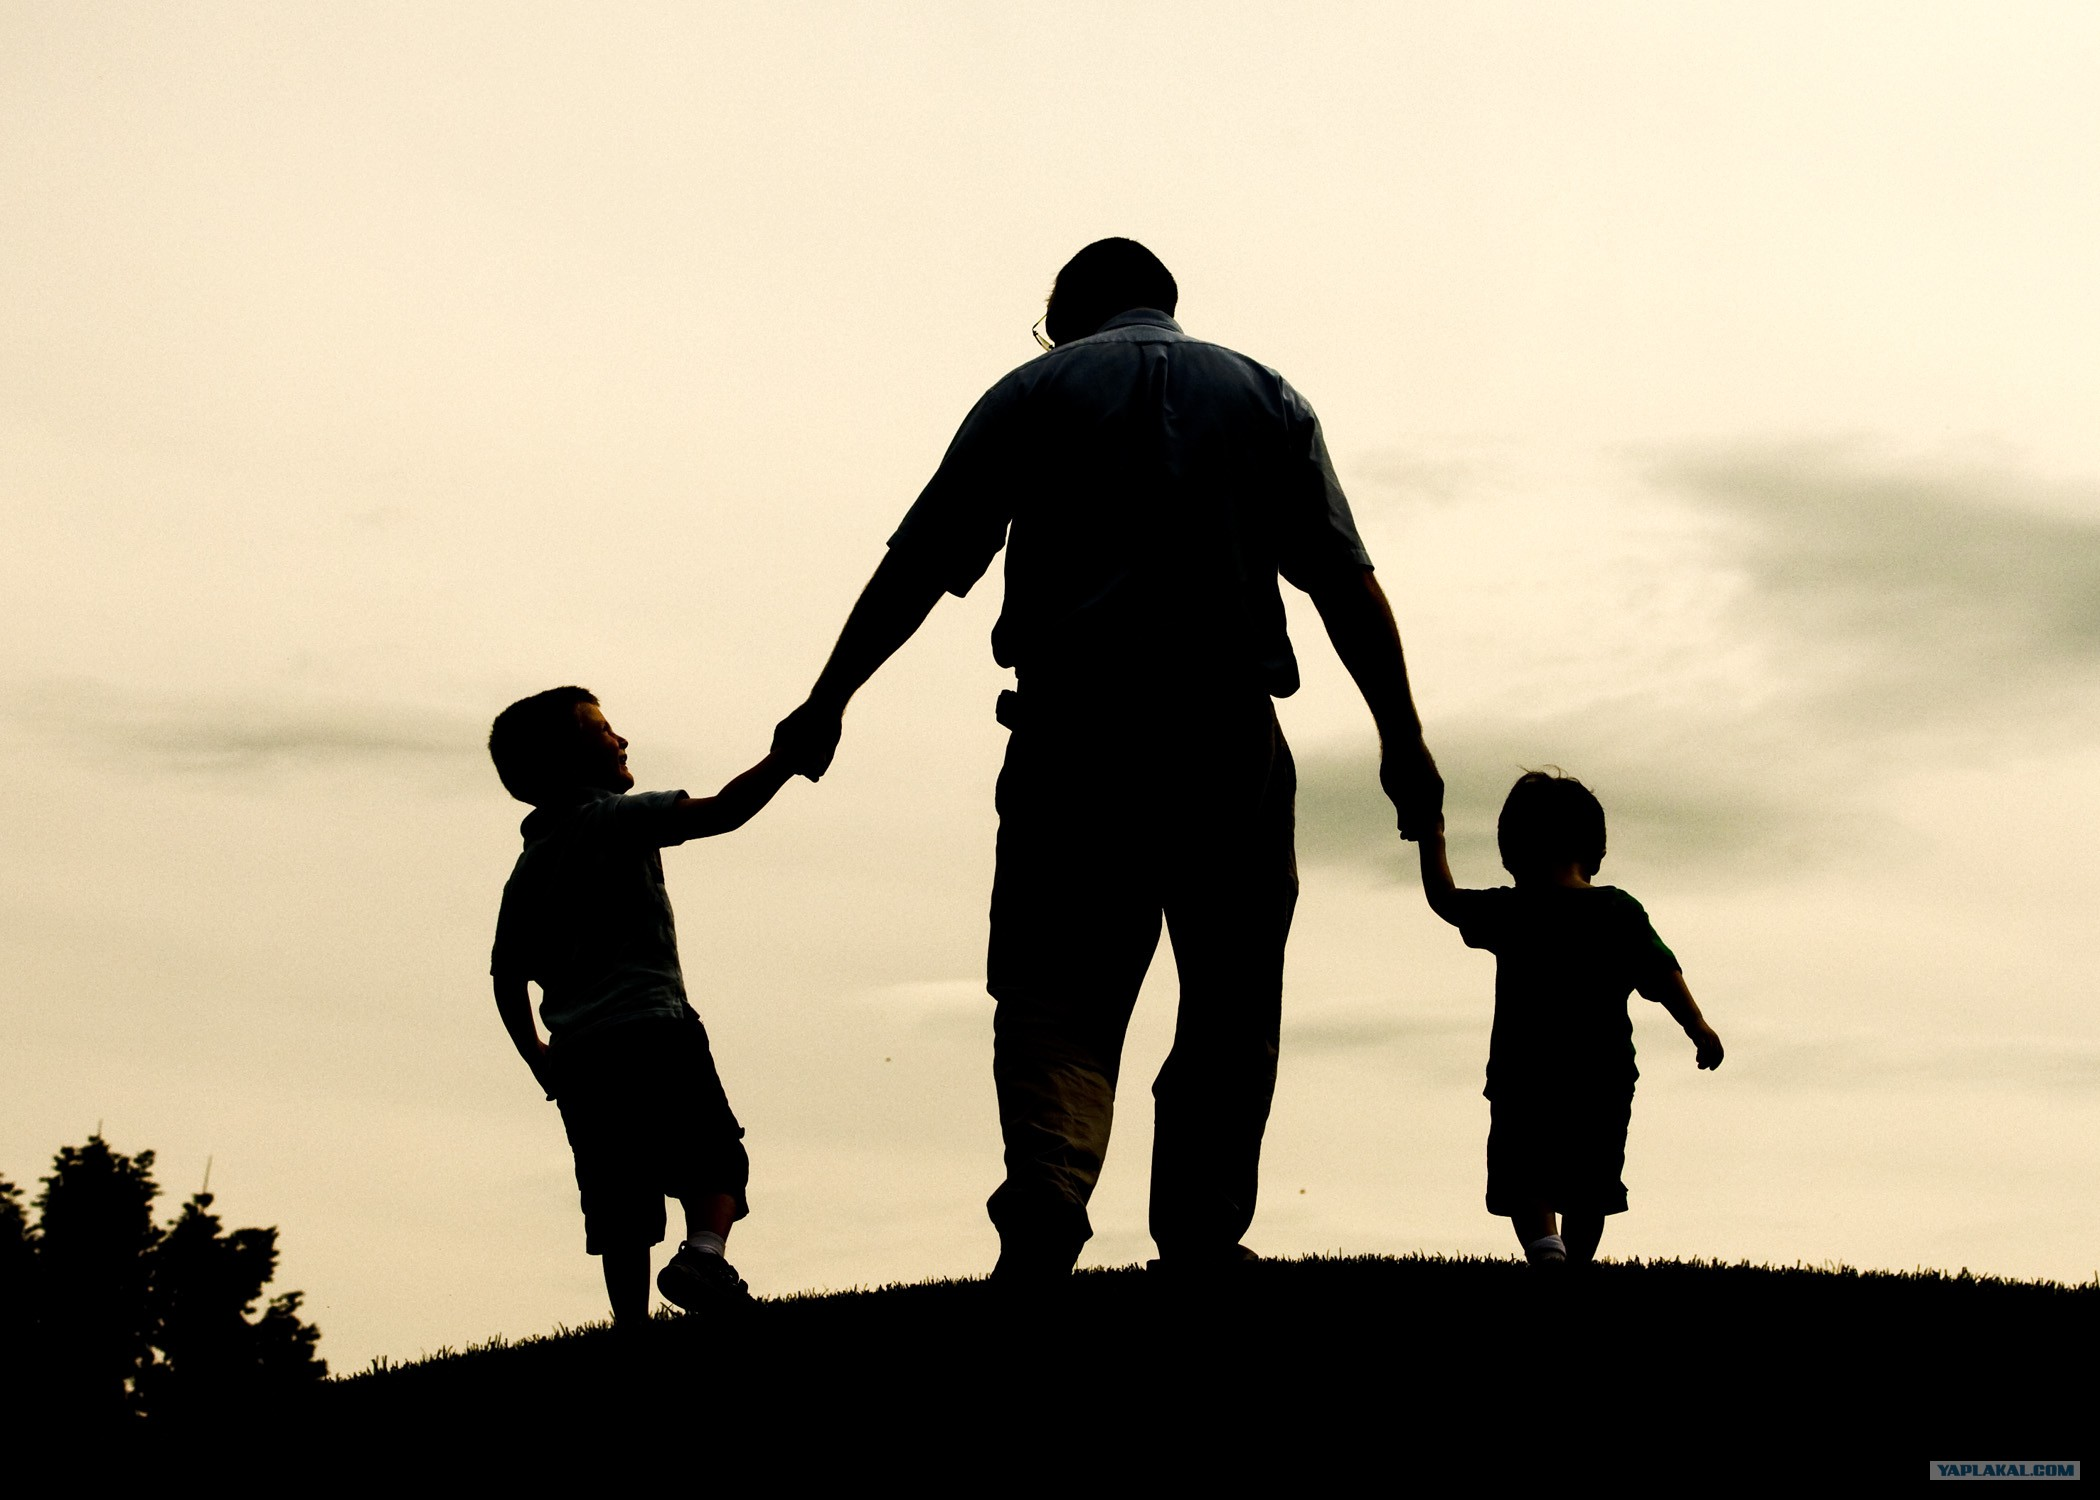 fathers family and father Father facts 7 t he premier reference manual for anyone interested in promoting responsible fatherhood and being a great dad, father facts 7 is the most comprehensive father absence and father involvement research available in one publication.